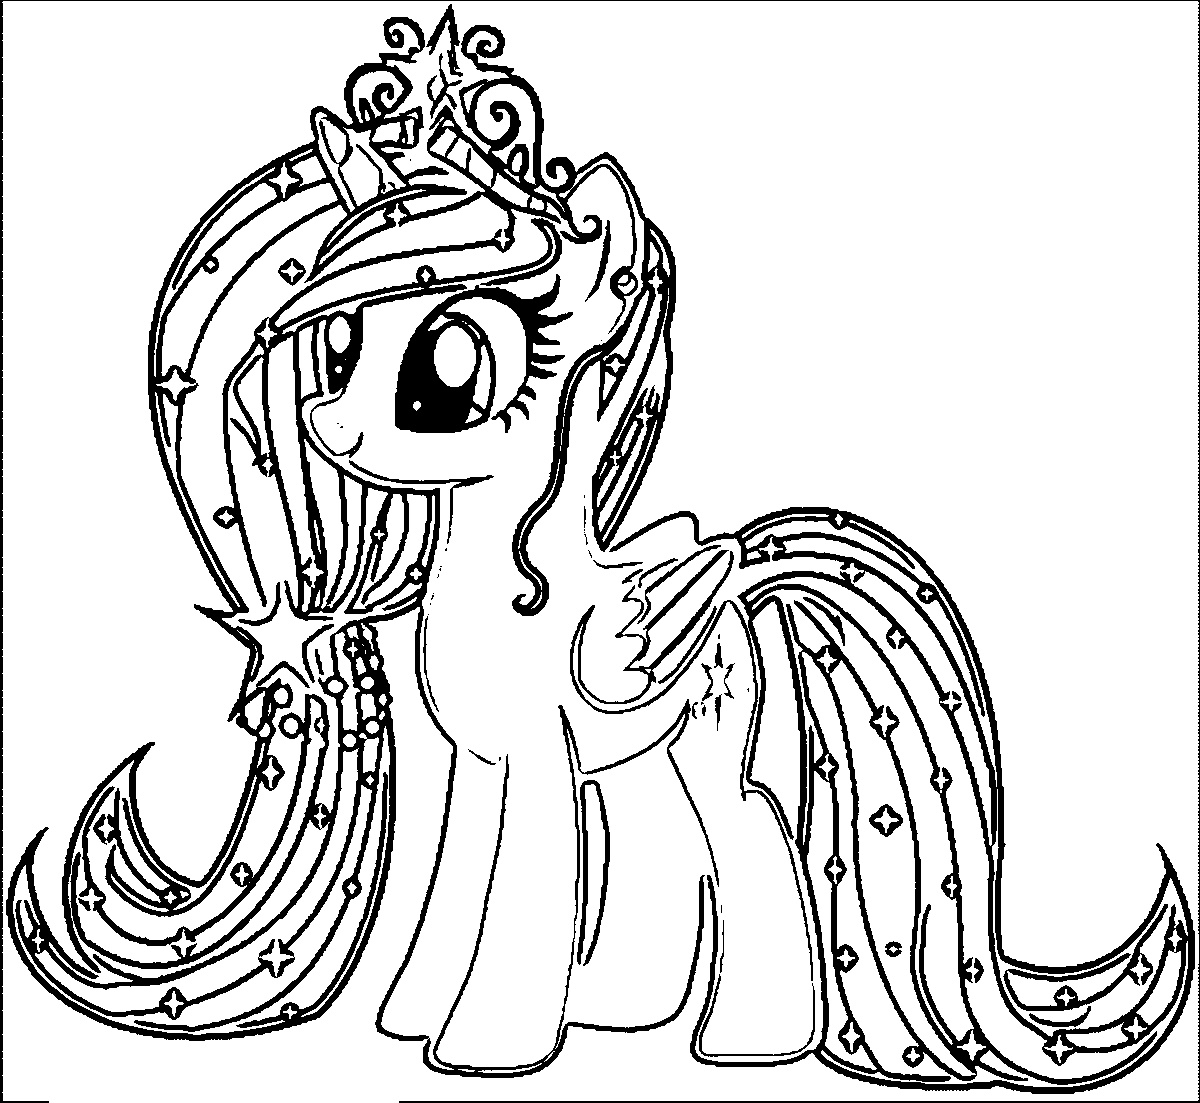 mlp coloring page my little pony coloring page coloring home mlp page coloring